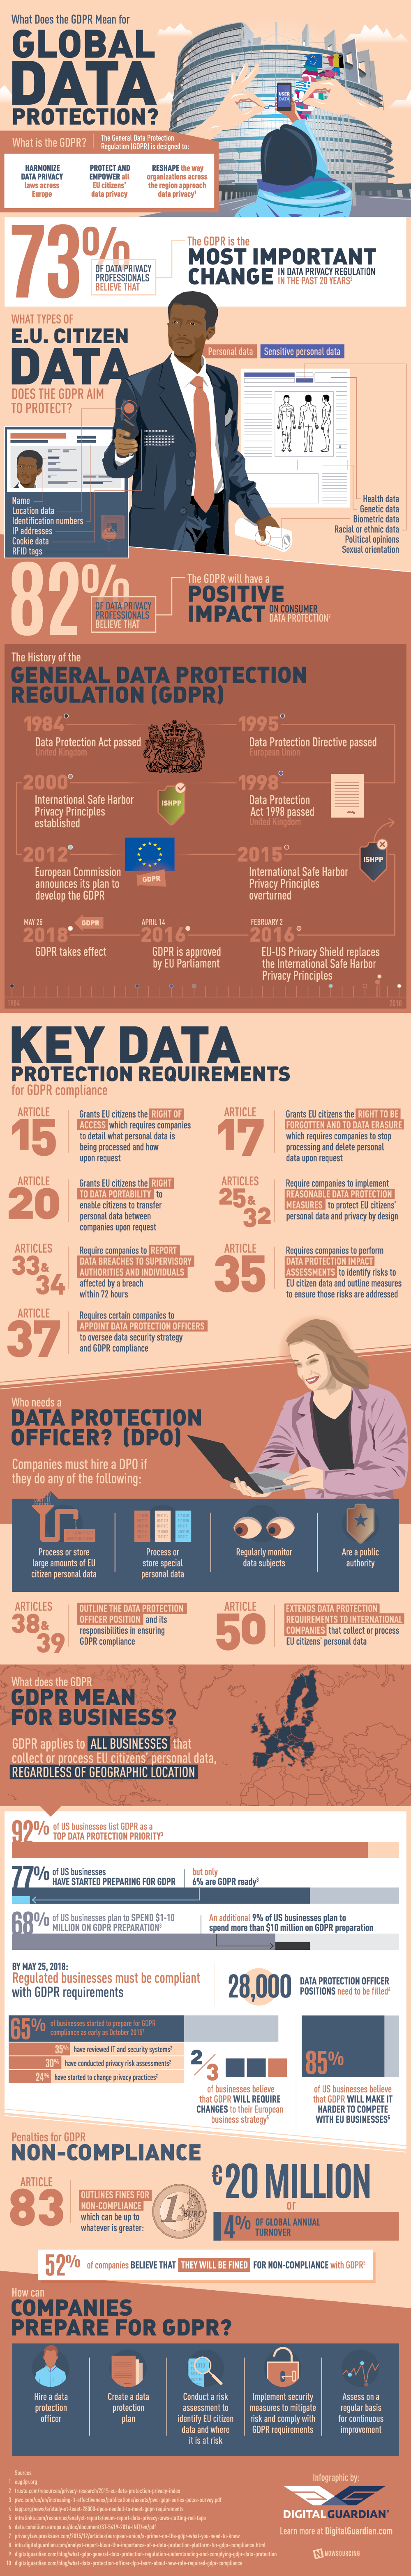 gdpr-global-data-protection-infographic.png